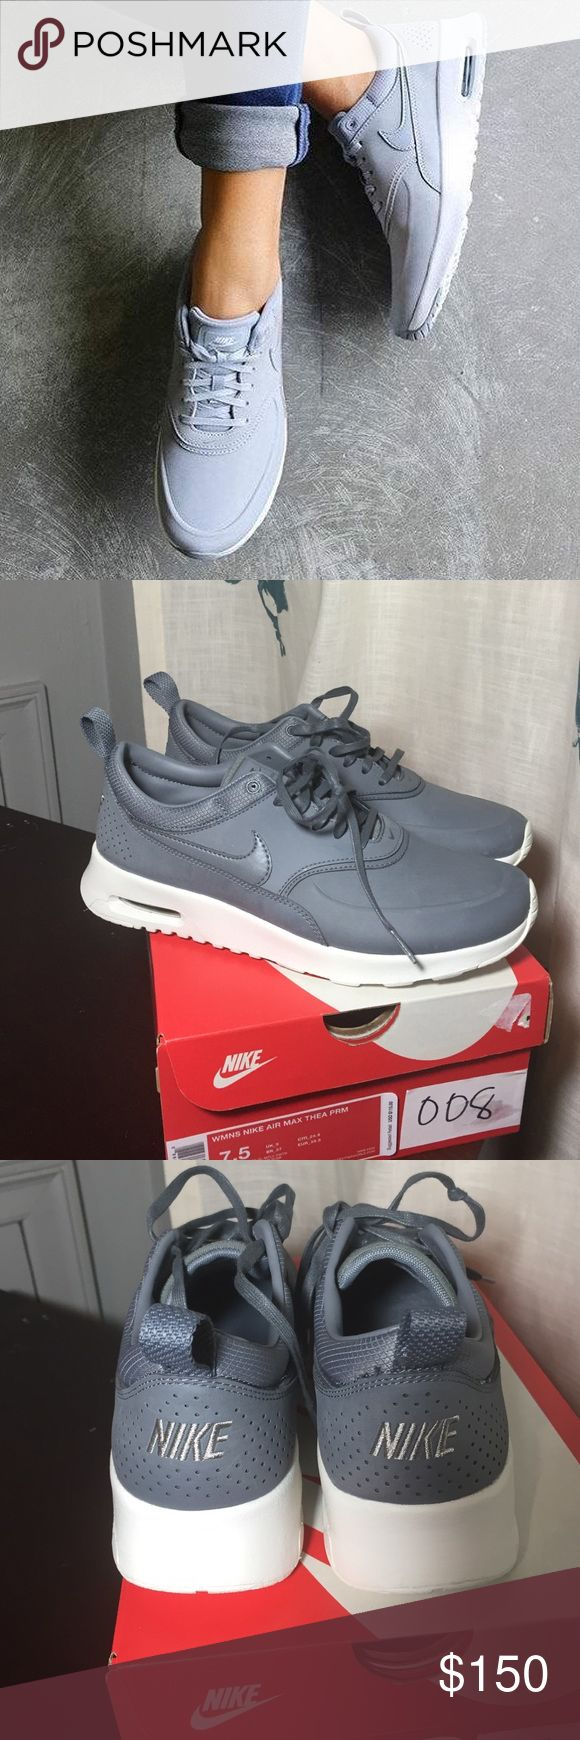 Nike Air Max Thea Premium  Authentic Nike Air Max Thea Premium ..size 7.5..Grey. So cute, true to size, reviews said they ran a little narrow so I sized up, but they are too big and I'm a true 7. Can't find in my size now;( My loss..your gain Nike Shoes Athletic Shoes